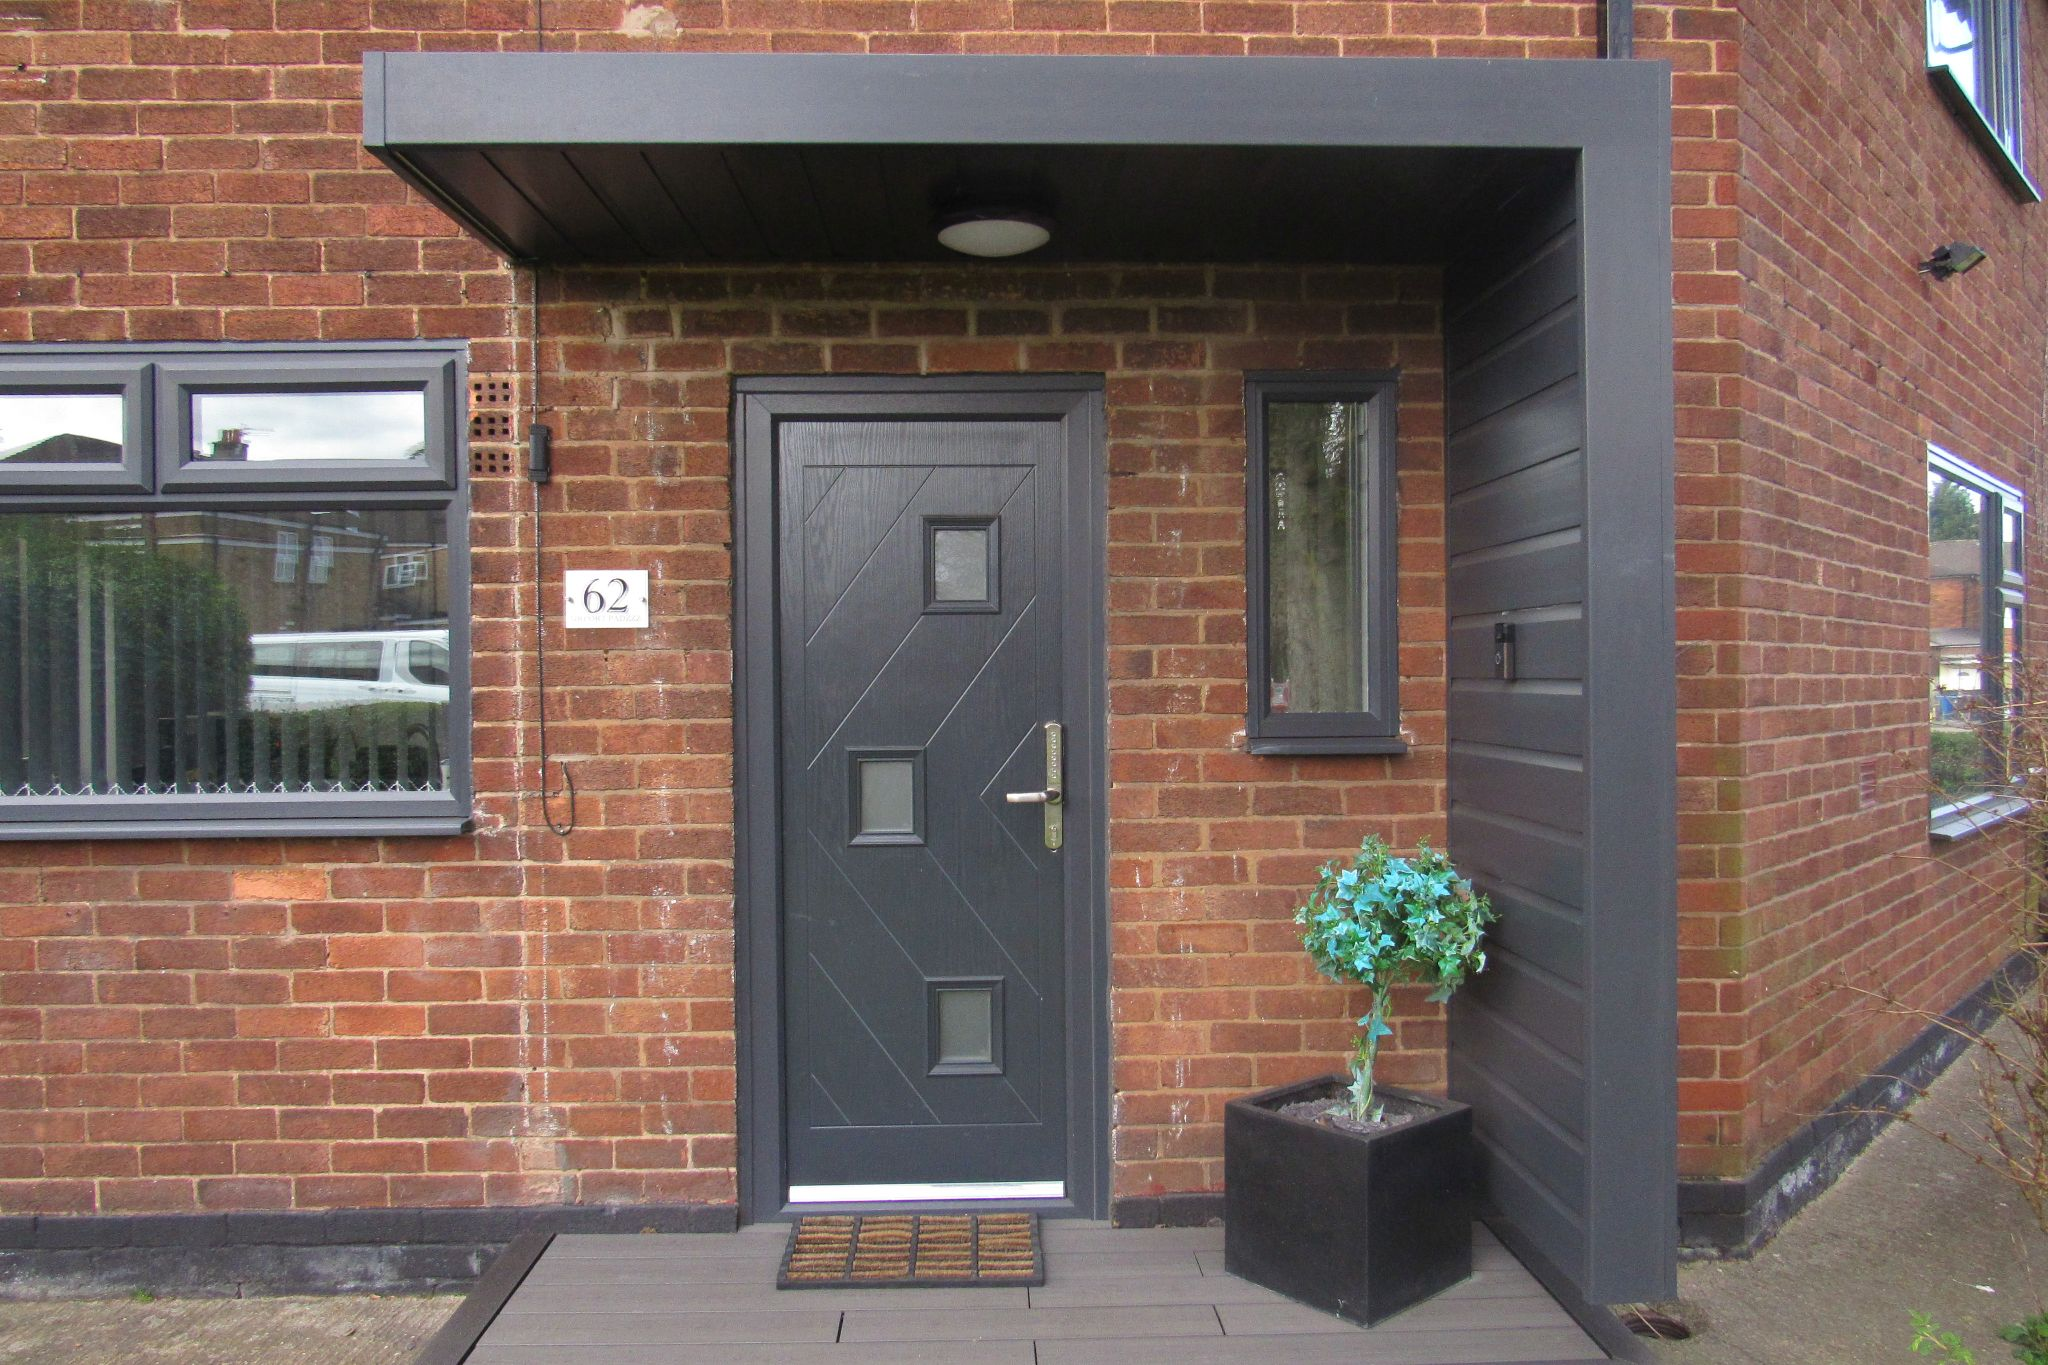 4 bedroom end terraced house SSTC in Manchester - Photograph 2.